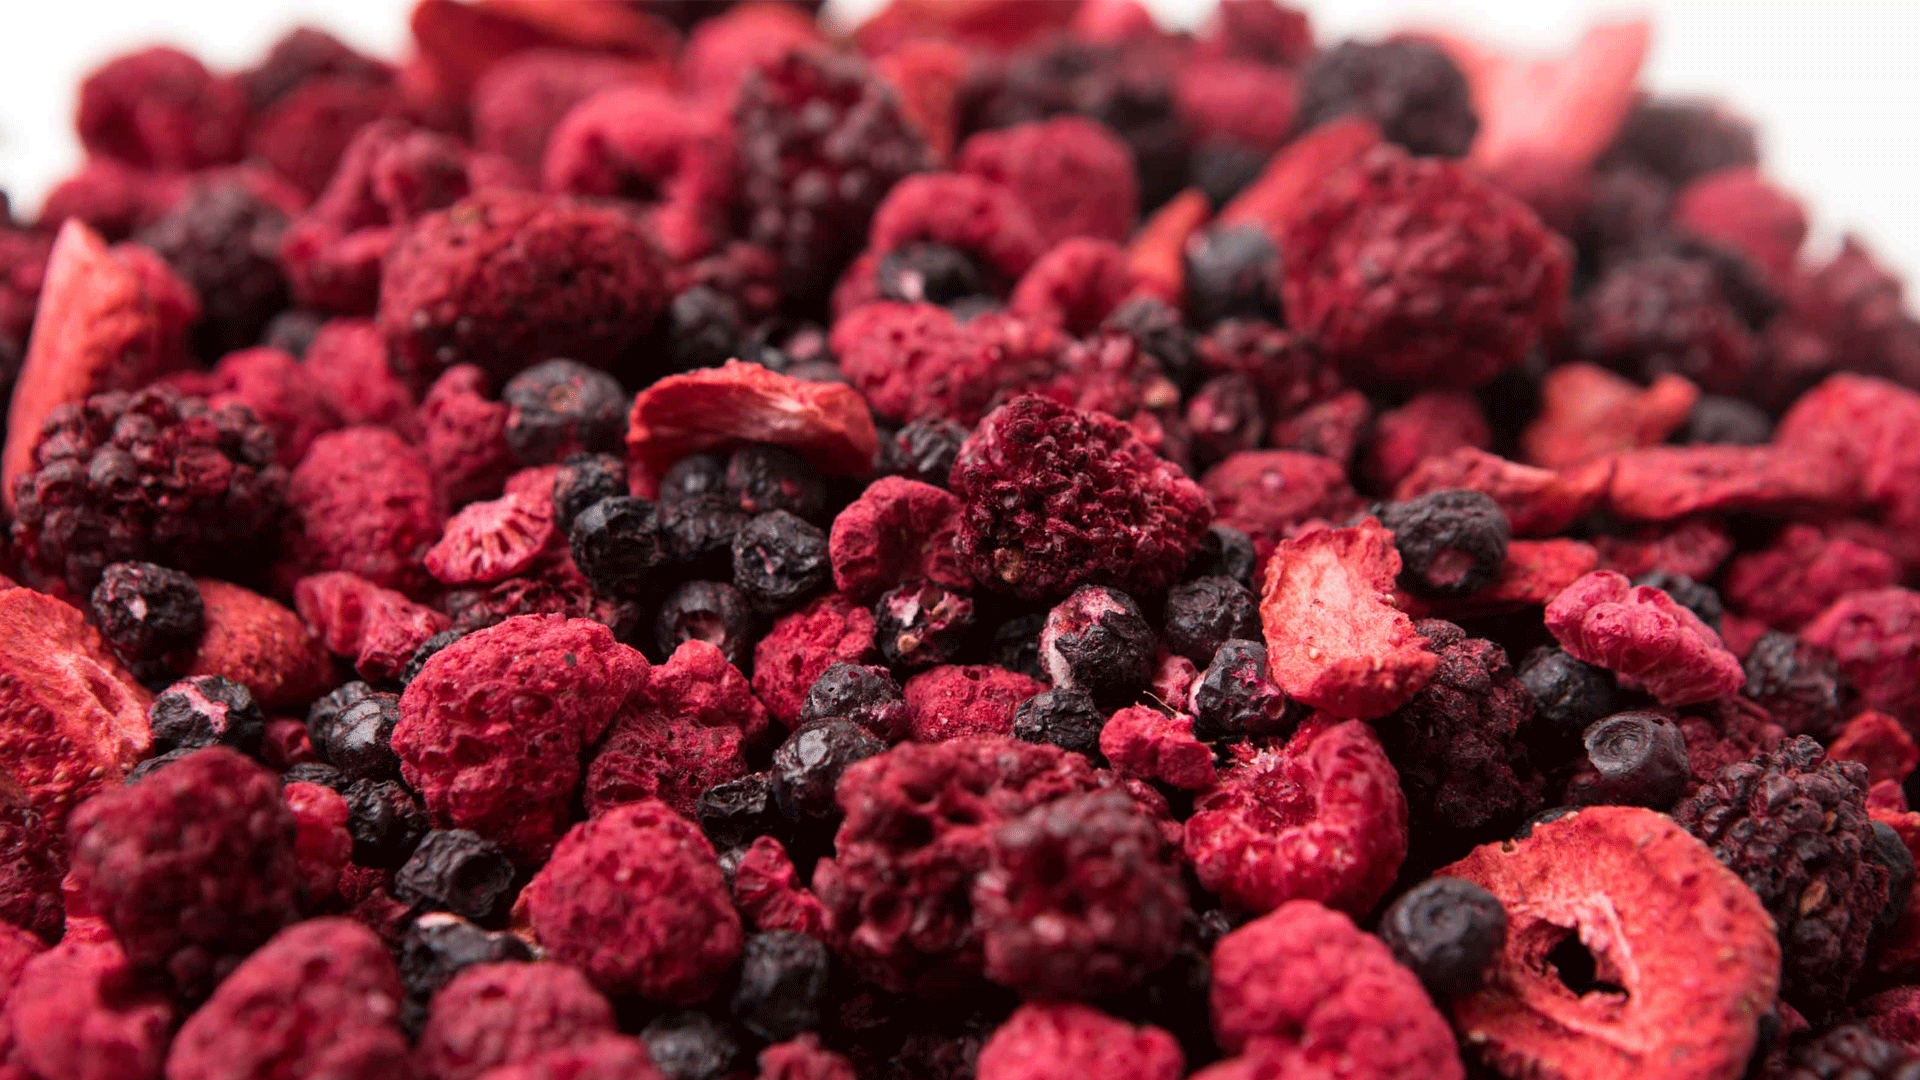 Freeze dried mixed fruit - strawberries, raspberries, blackberries and wild blueberries